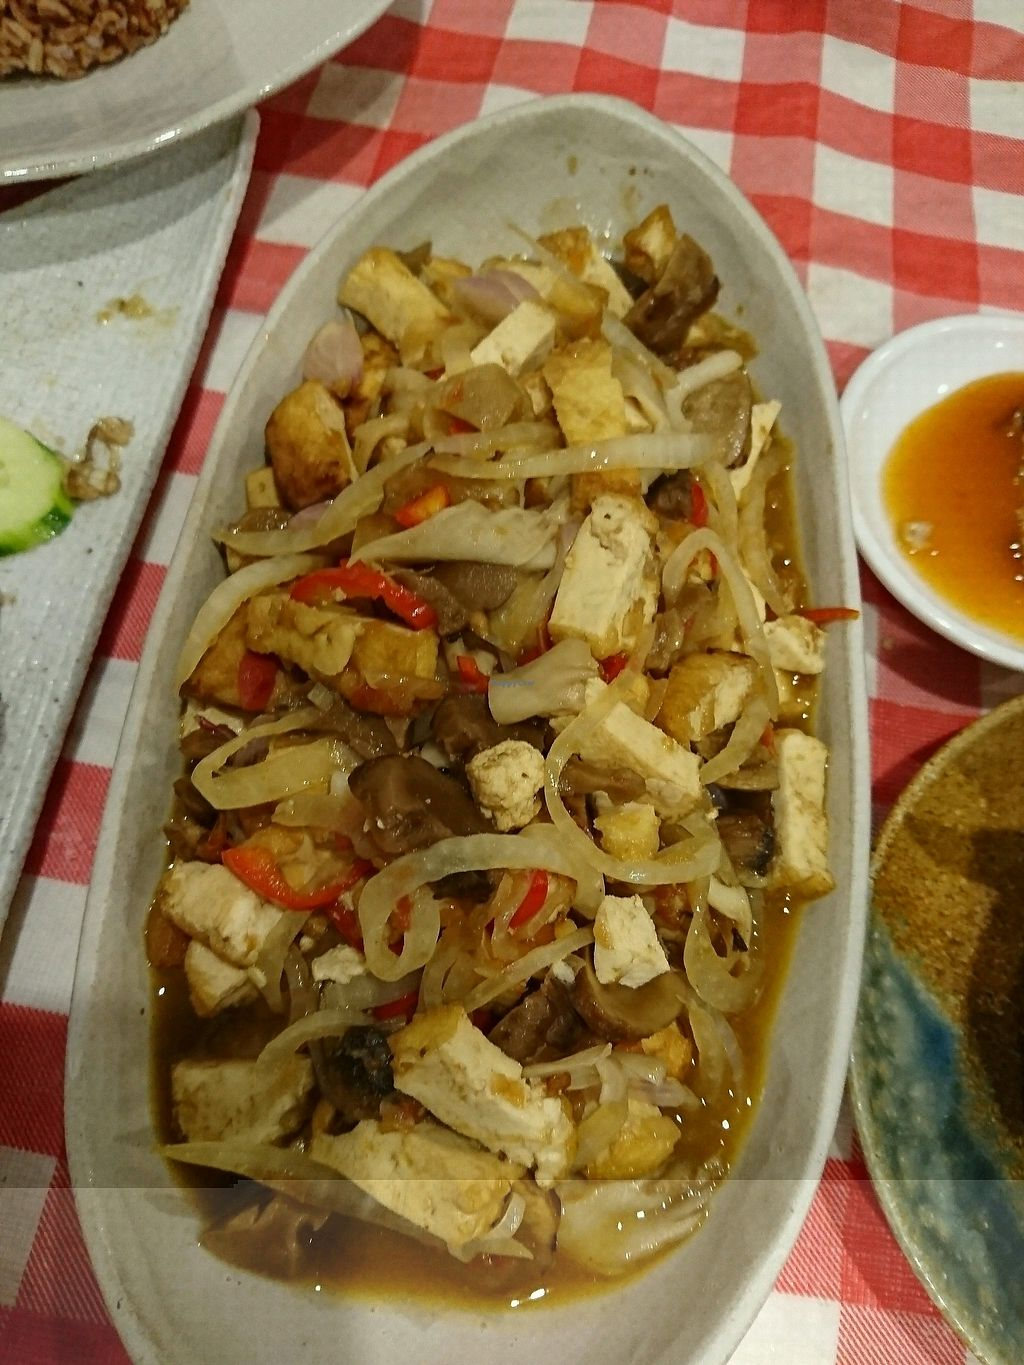 """Photo of Mahob Buos  by <a href=""""/members/profile/Desley"""">Desley</a> <br/>tofu with mushroom sauces <br/> February 13, 2018  - <a href='/contact/abuse/image/106738/358856'>Report</a>"""